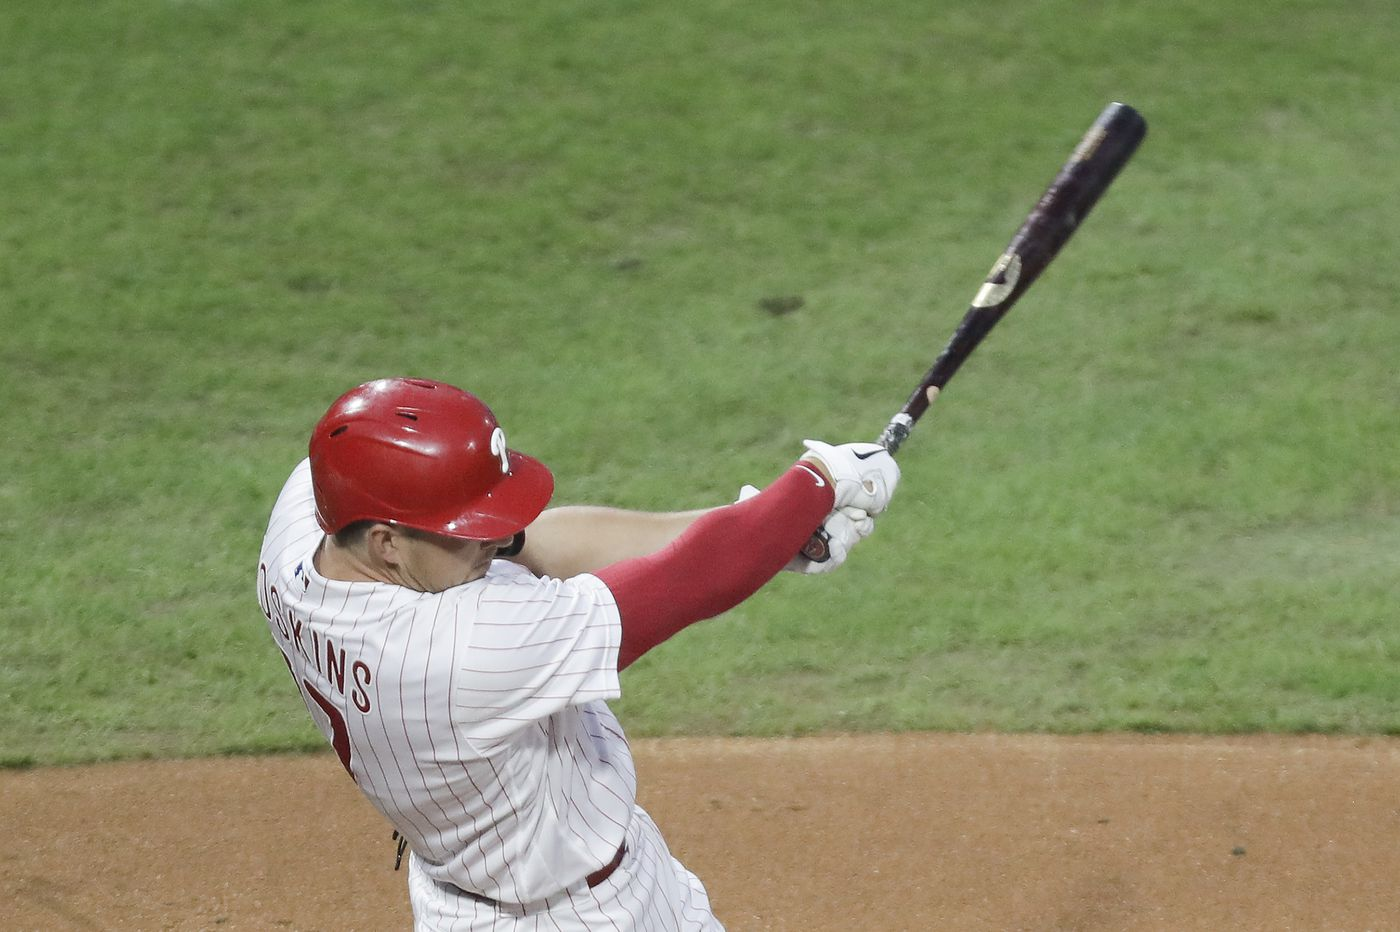 Rhys Hoskins' bat, Aaron Nola's arm propel Phillies past Mets